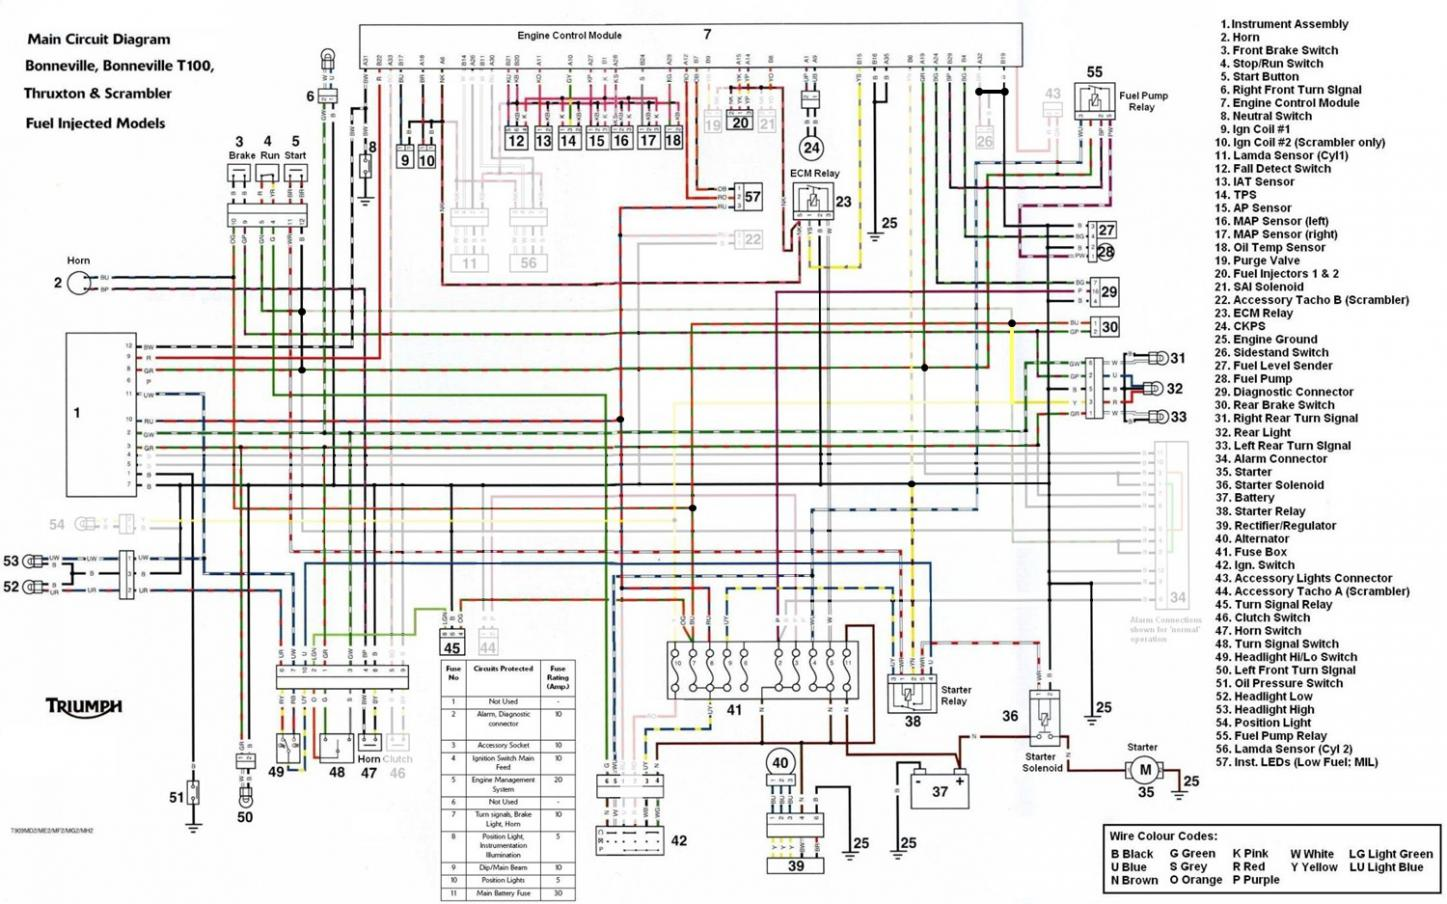 Xr650l wiring diagram 2005 example electrical wiring diagram xr600 wiring diagram free download wiring diagram schematic wire rh ayseesra co 2000 xr200 wiring swarovskicordoba Choice Image